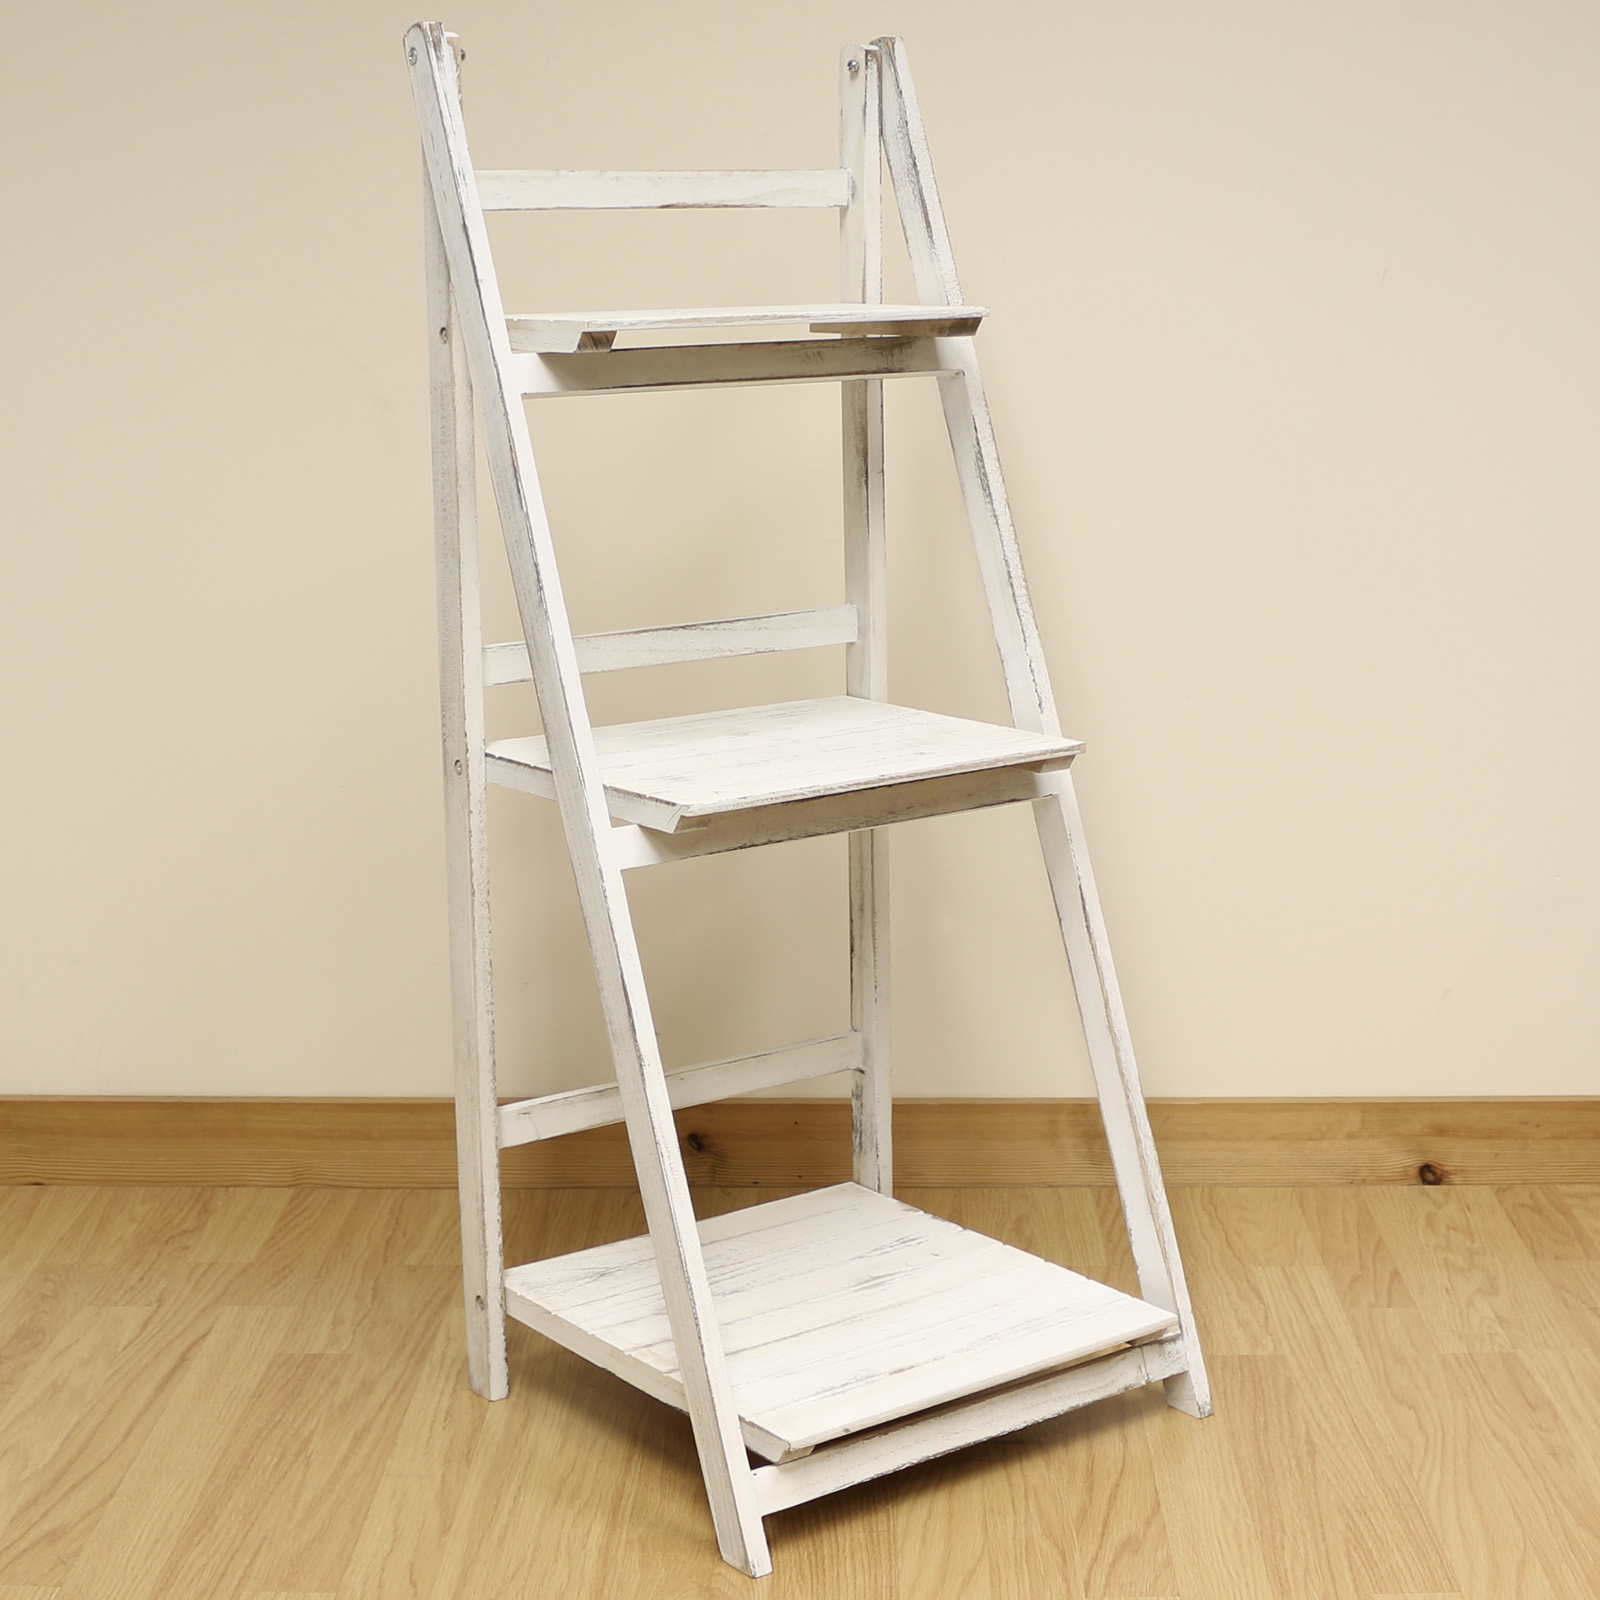 Sentinel 3 Tier White Wash Ladder Shelf Display Unit Free Standing Folding Book Shelves